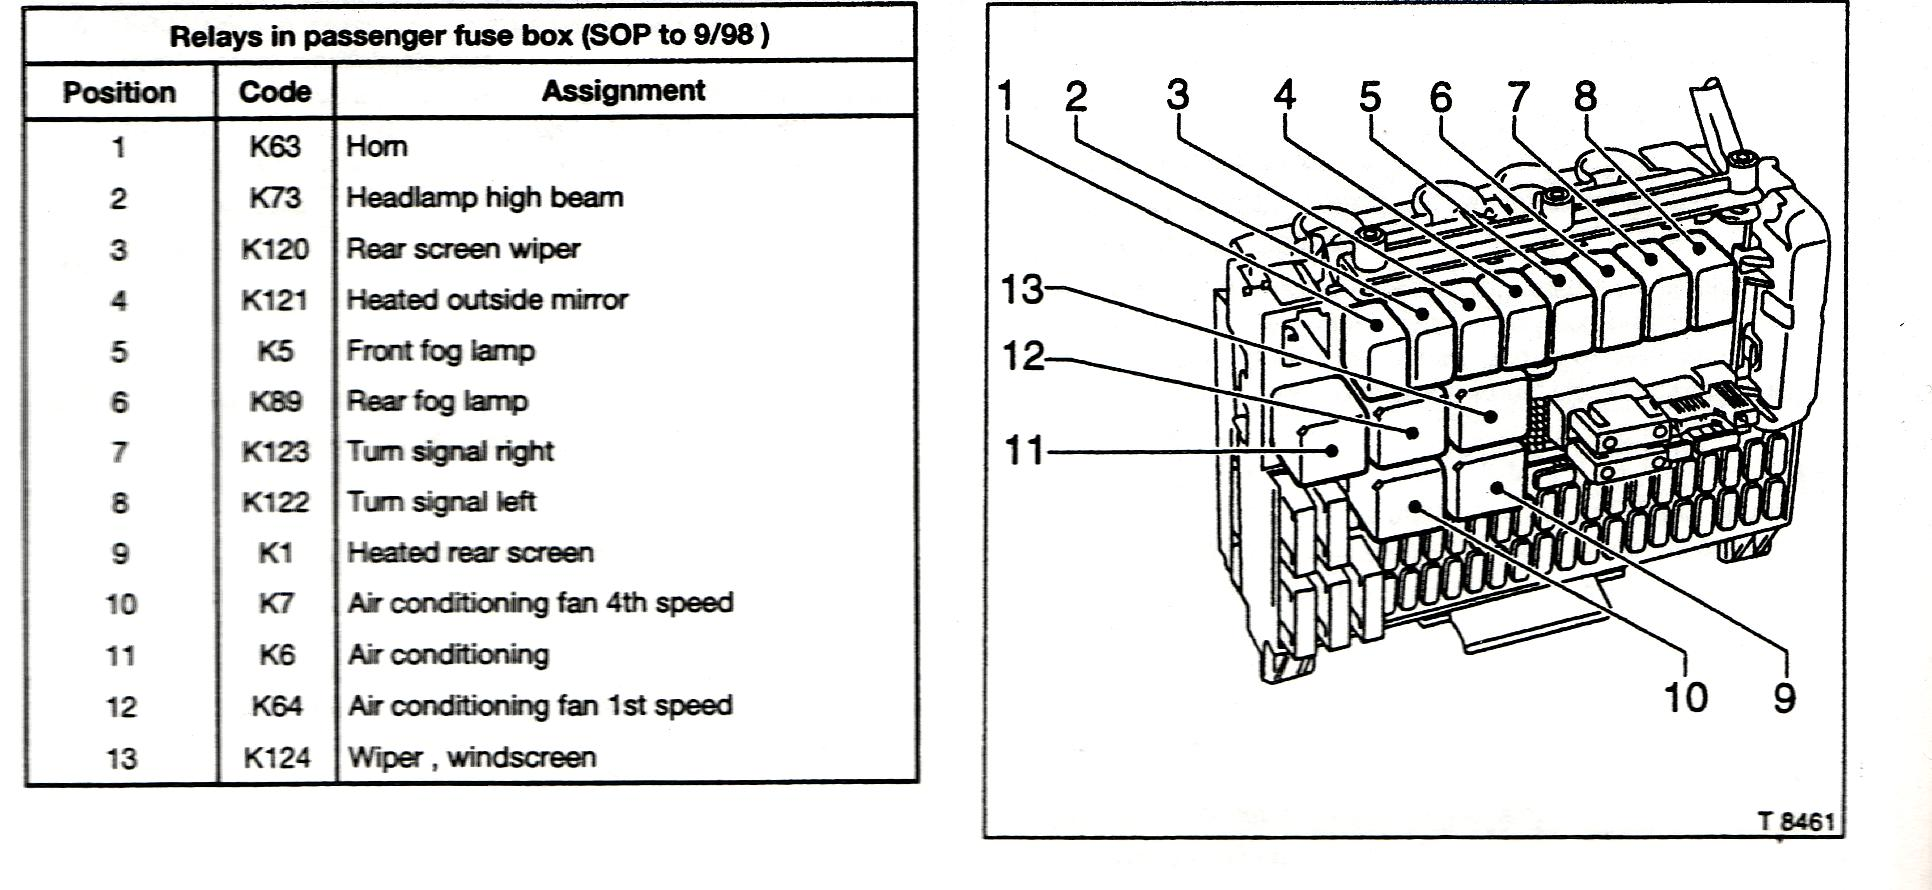 opel astra h fuse box layout detailed schematics diagram rh technograffito  com vauxhall zafira 2006 radio